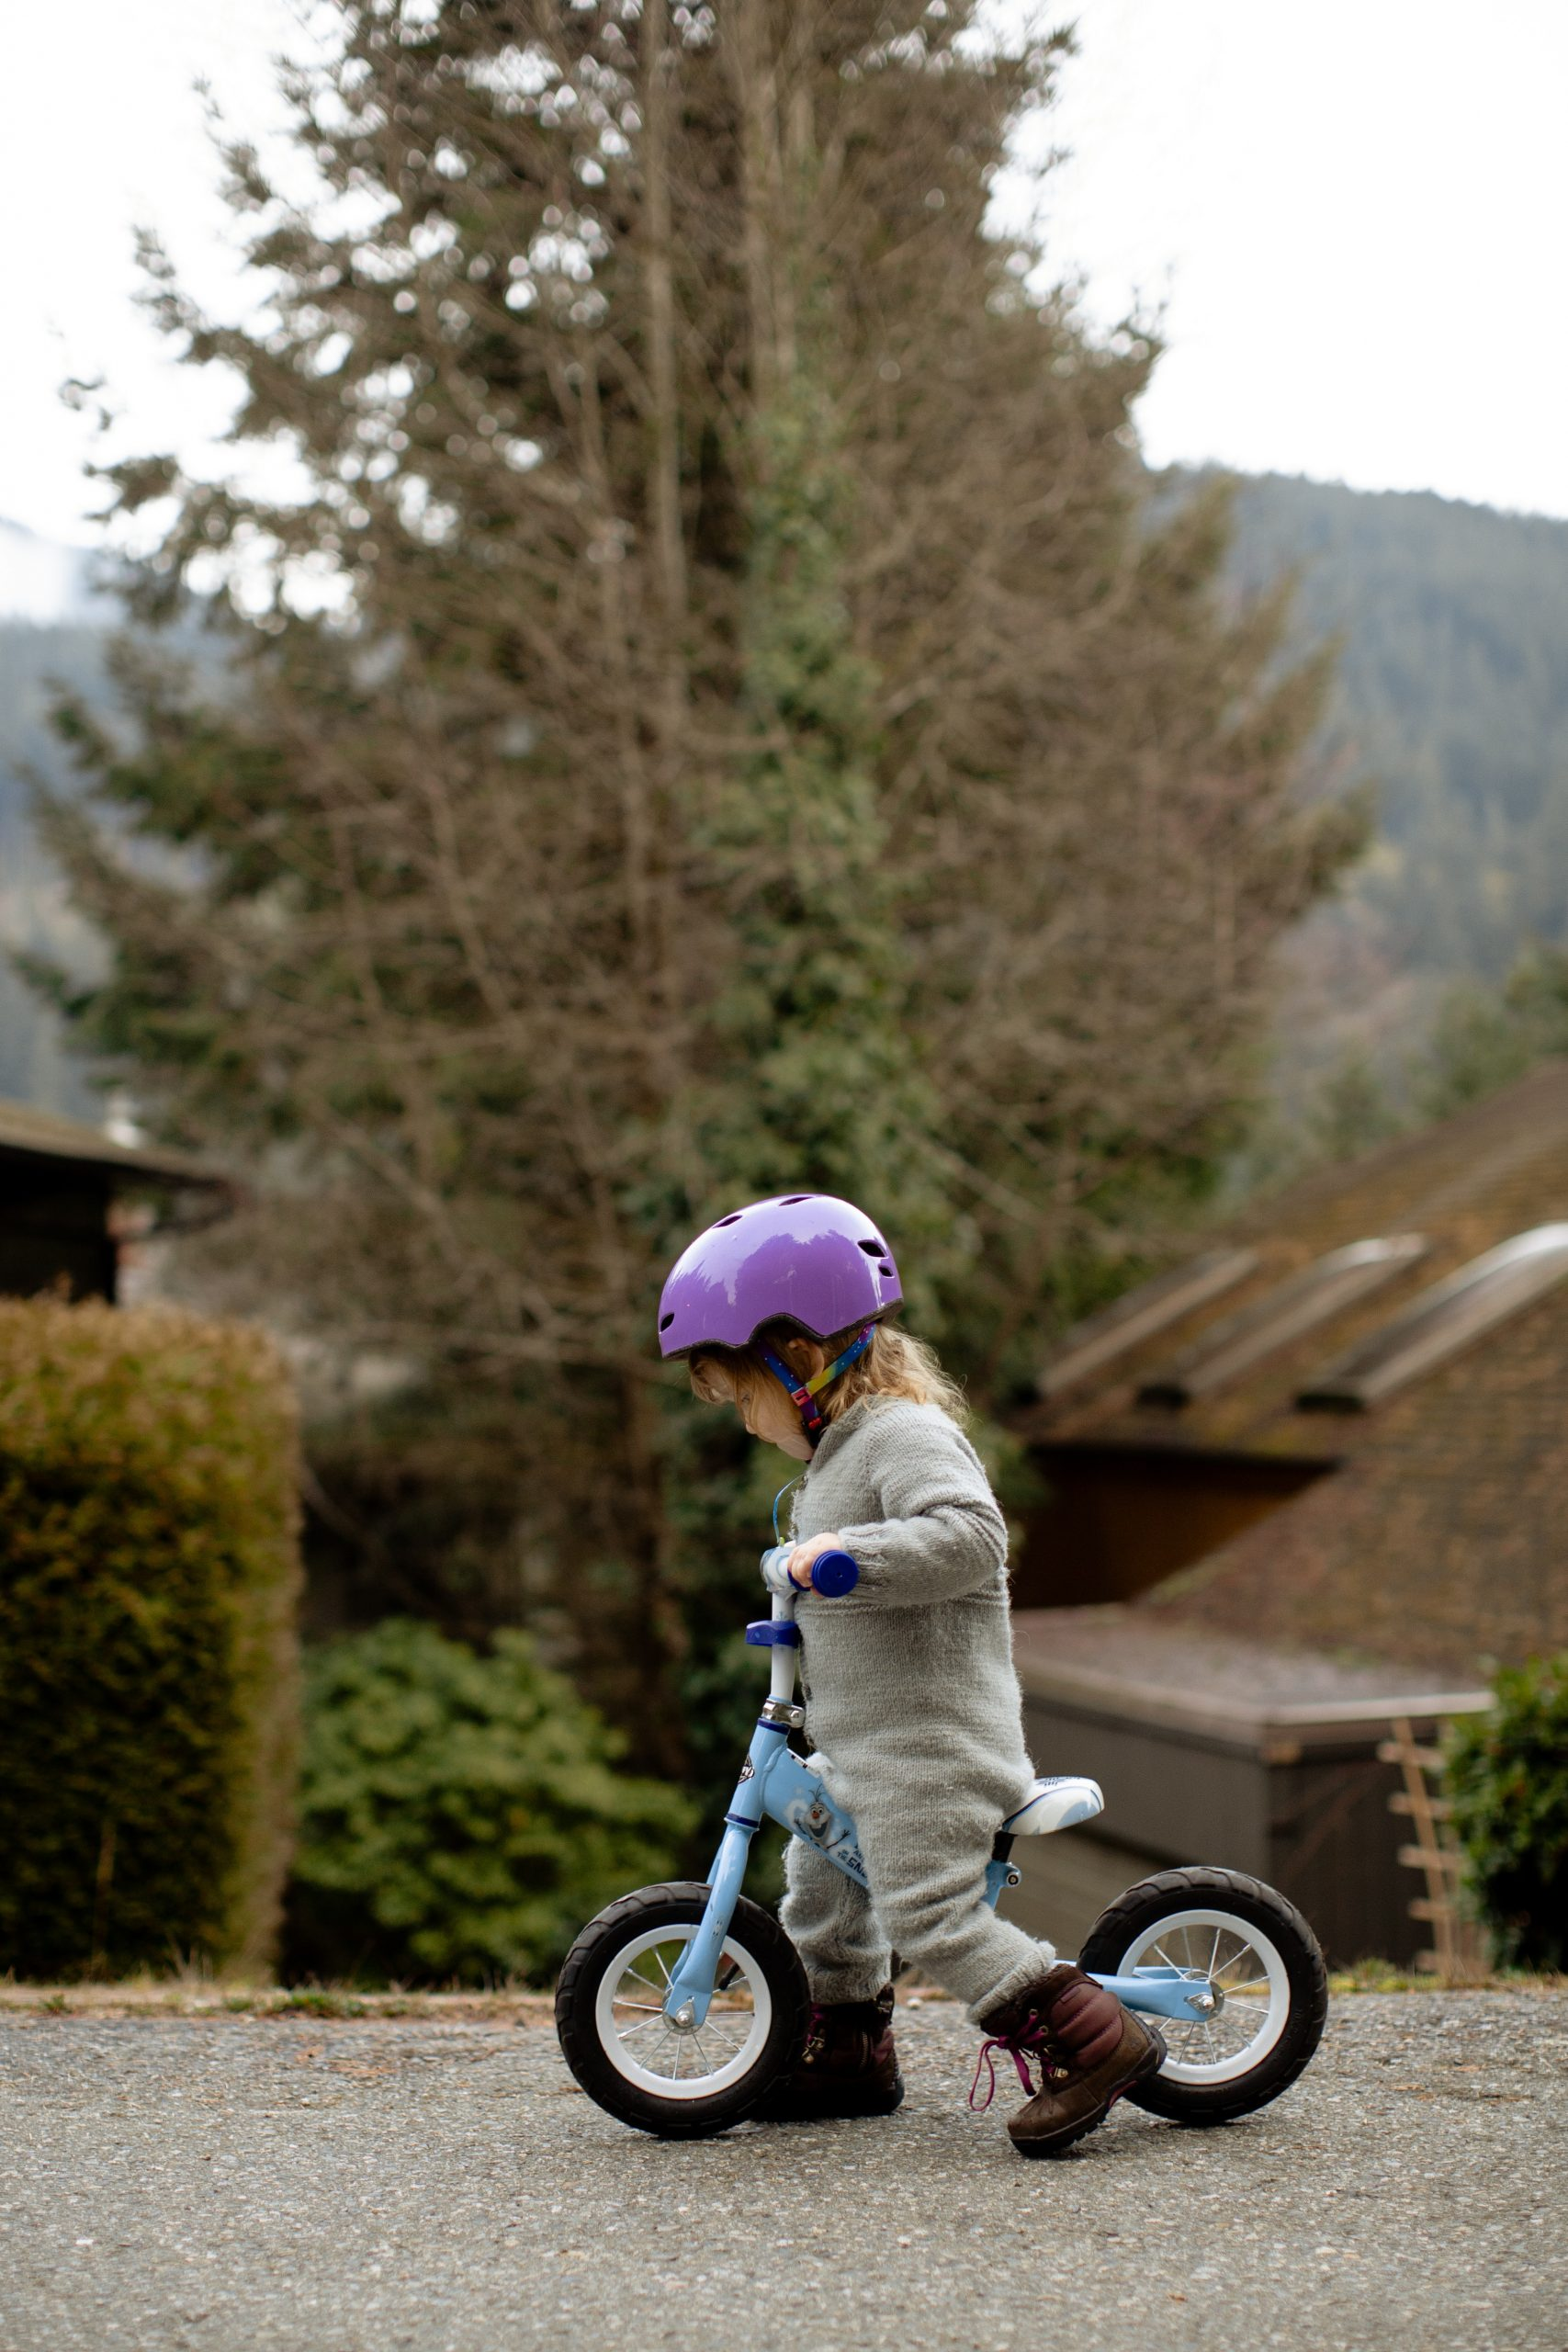 Child on bike in pink helmet